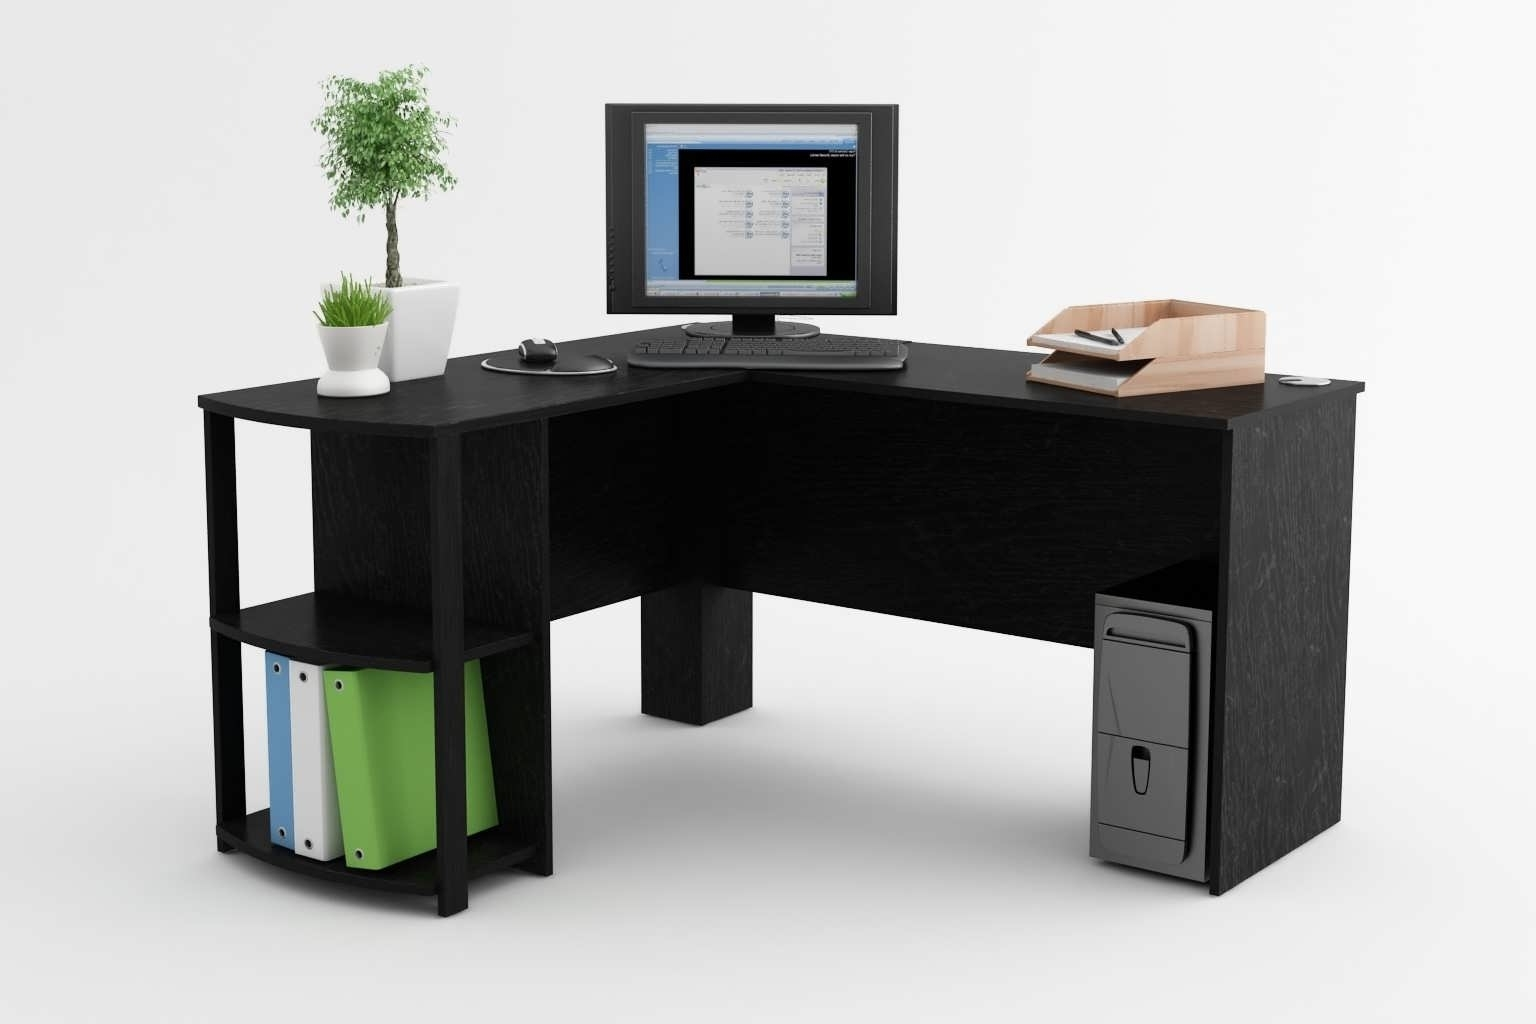 Office Desk : Build Your Own Desk Odd Lots Furniture Simple In Newest Computer Desks At Big Lots (View 14 of 20)